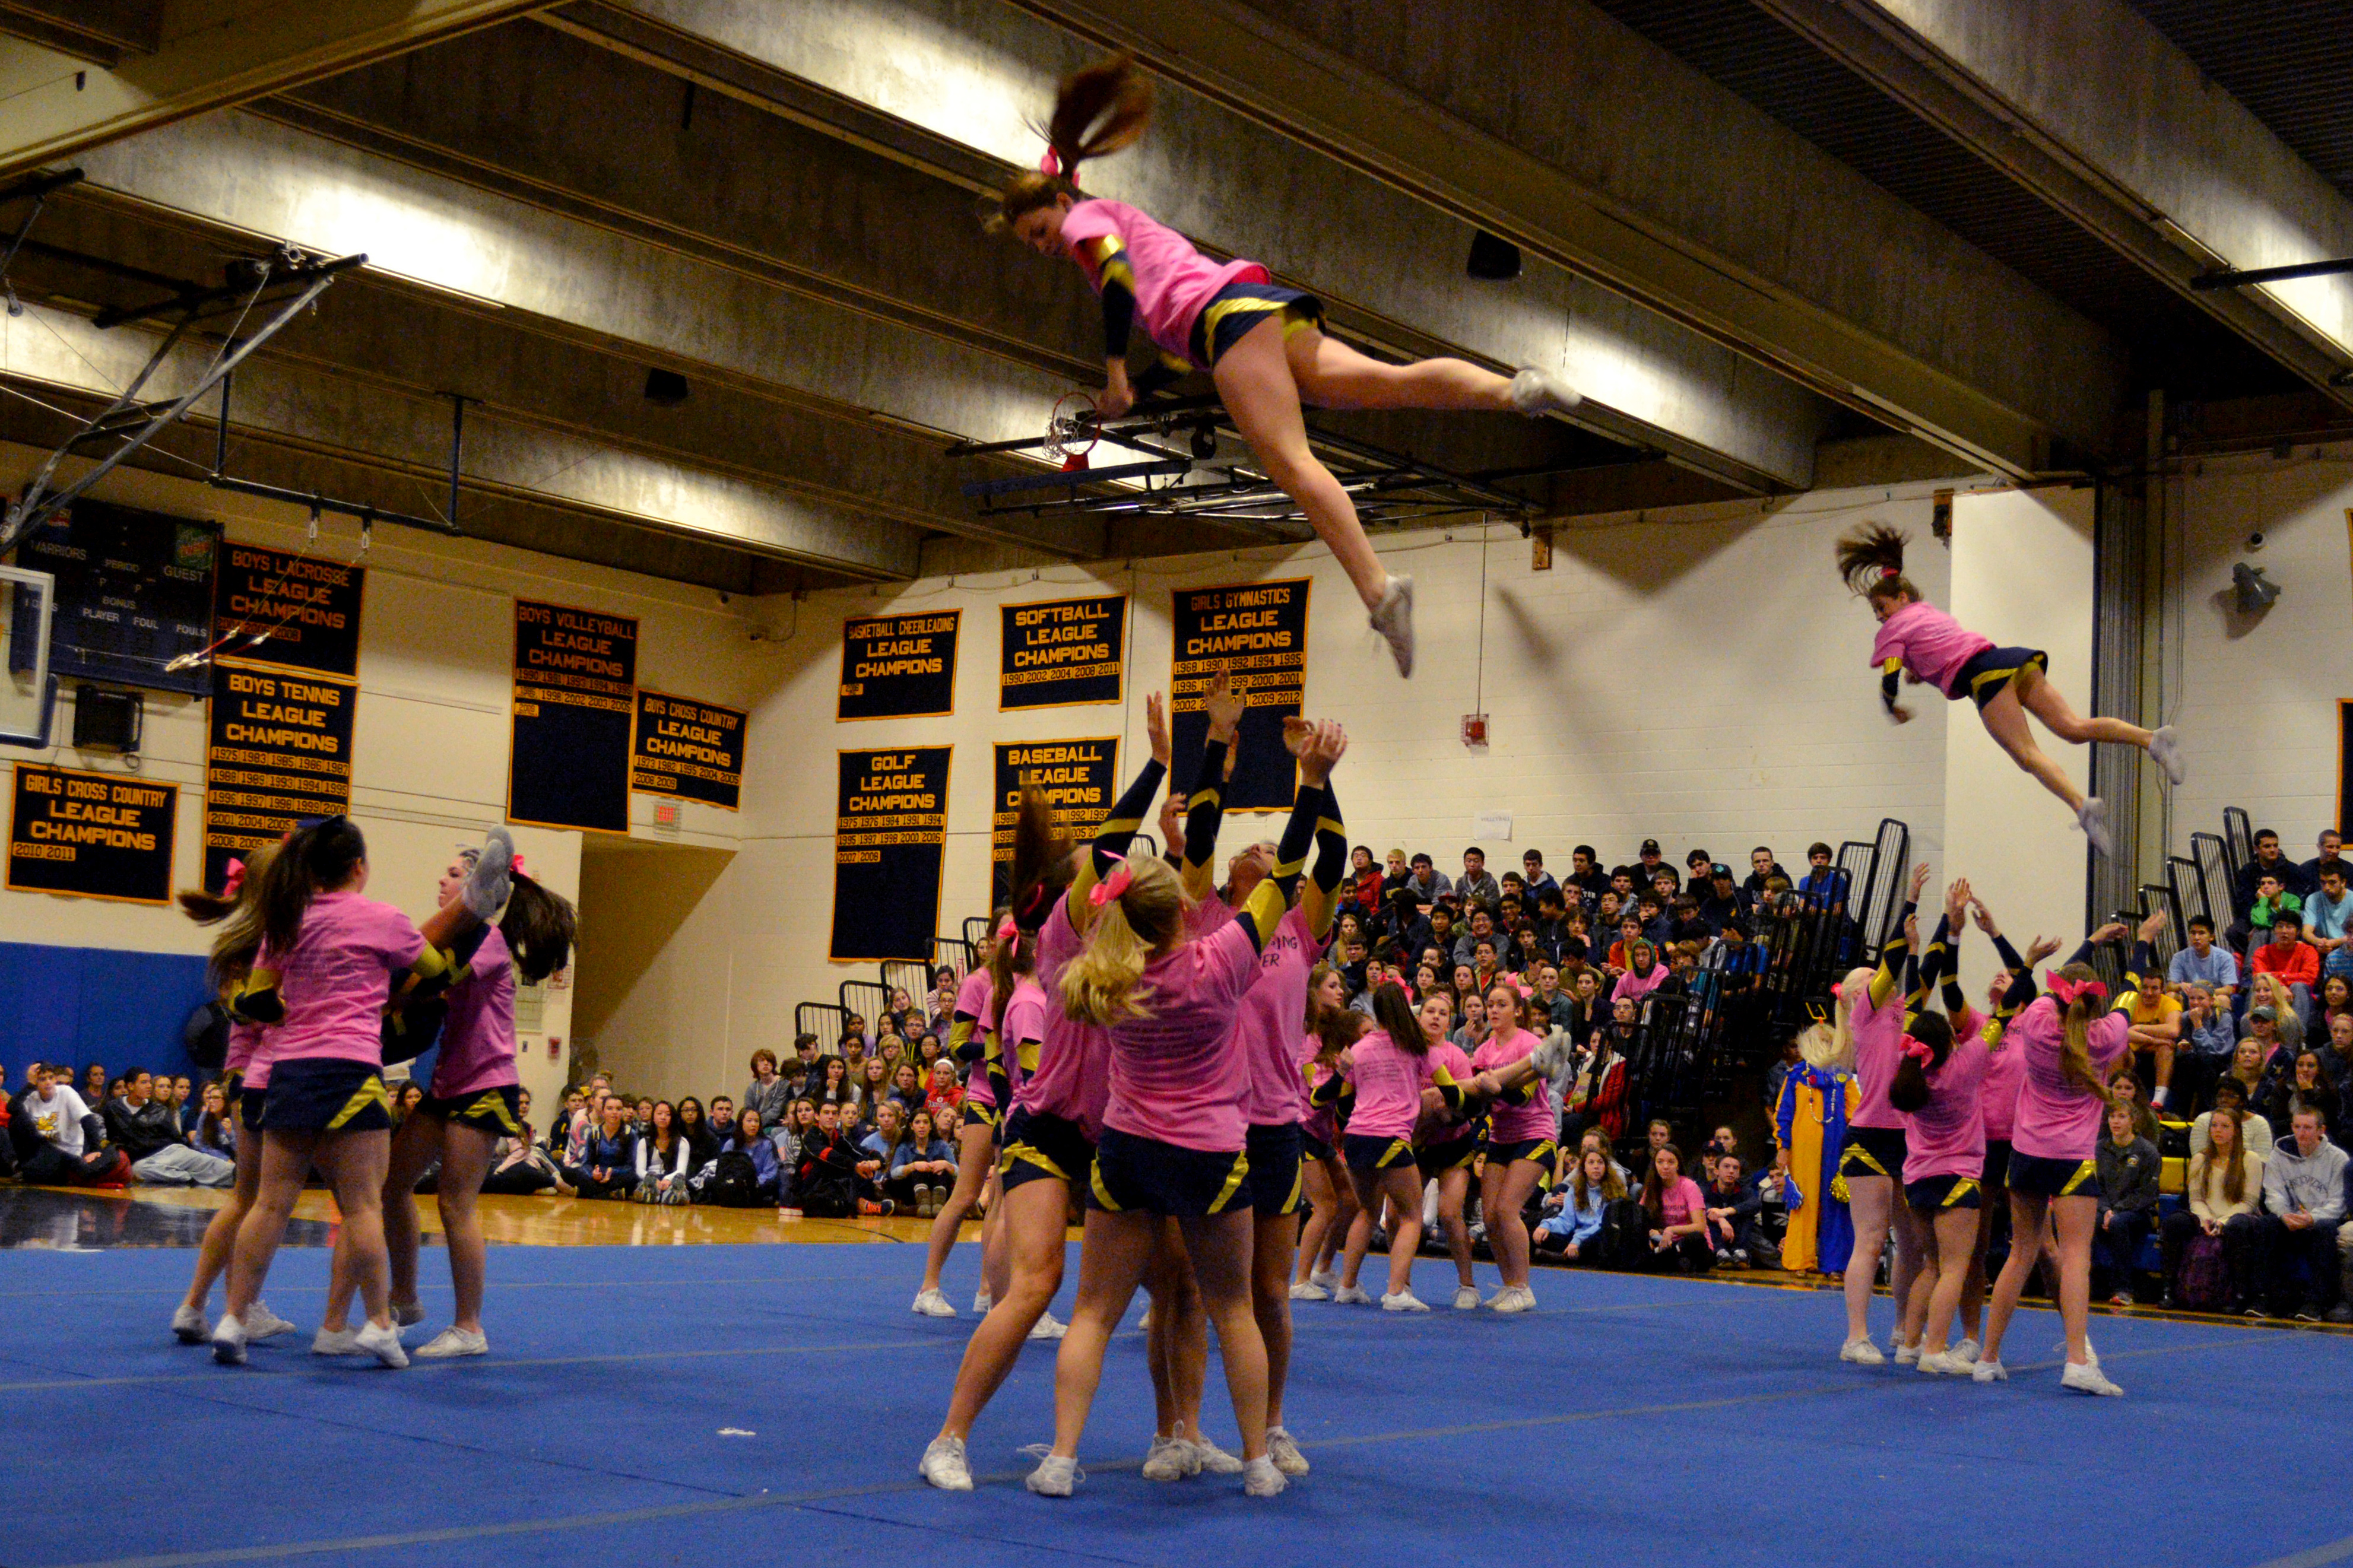 The varsity cheerleaders take to the air to entertain the crowd